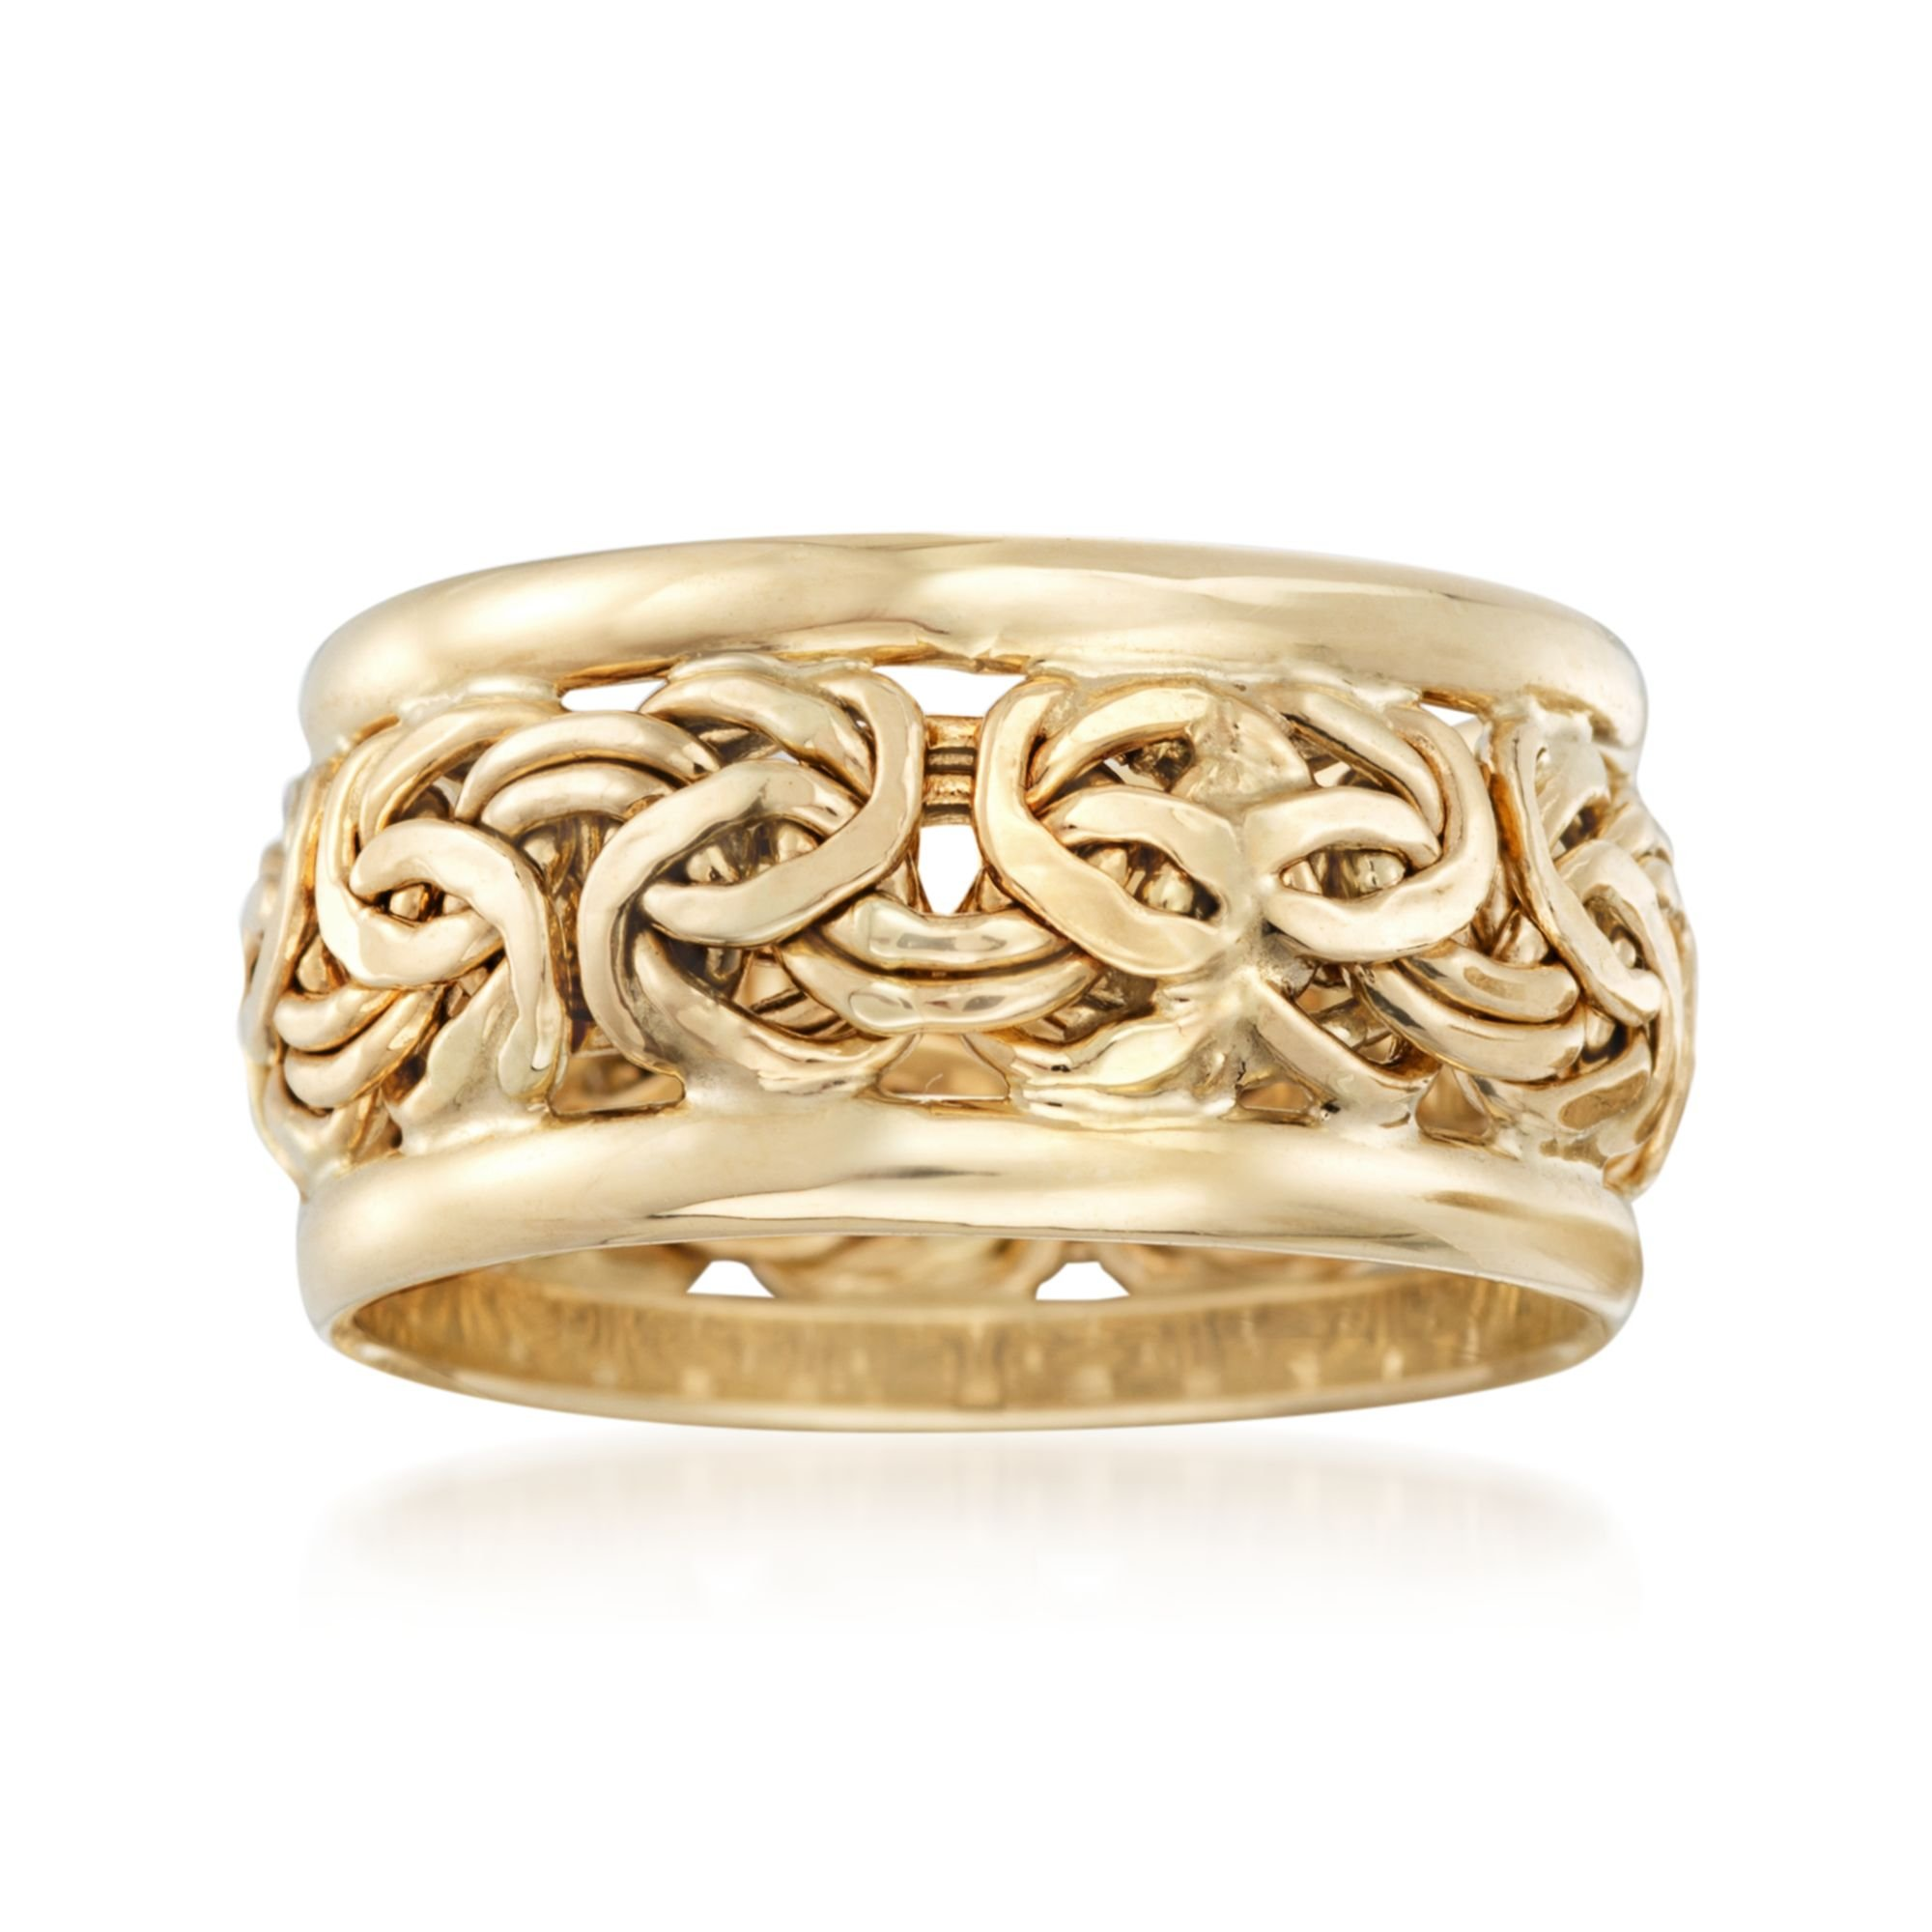 Ross-Simons 18kt Yellow Gold Bordered Byzantine Ring